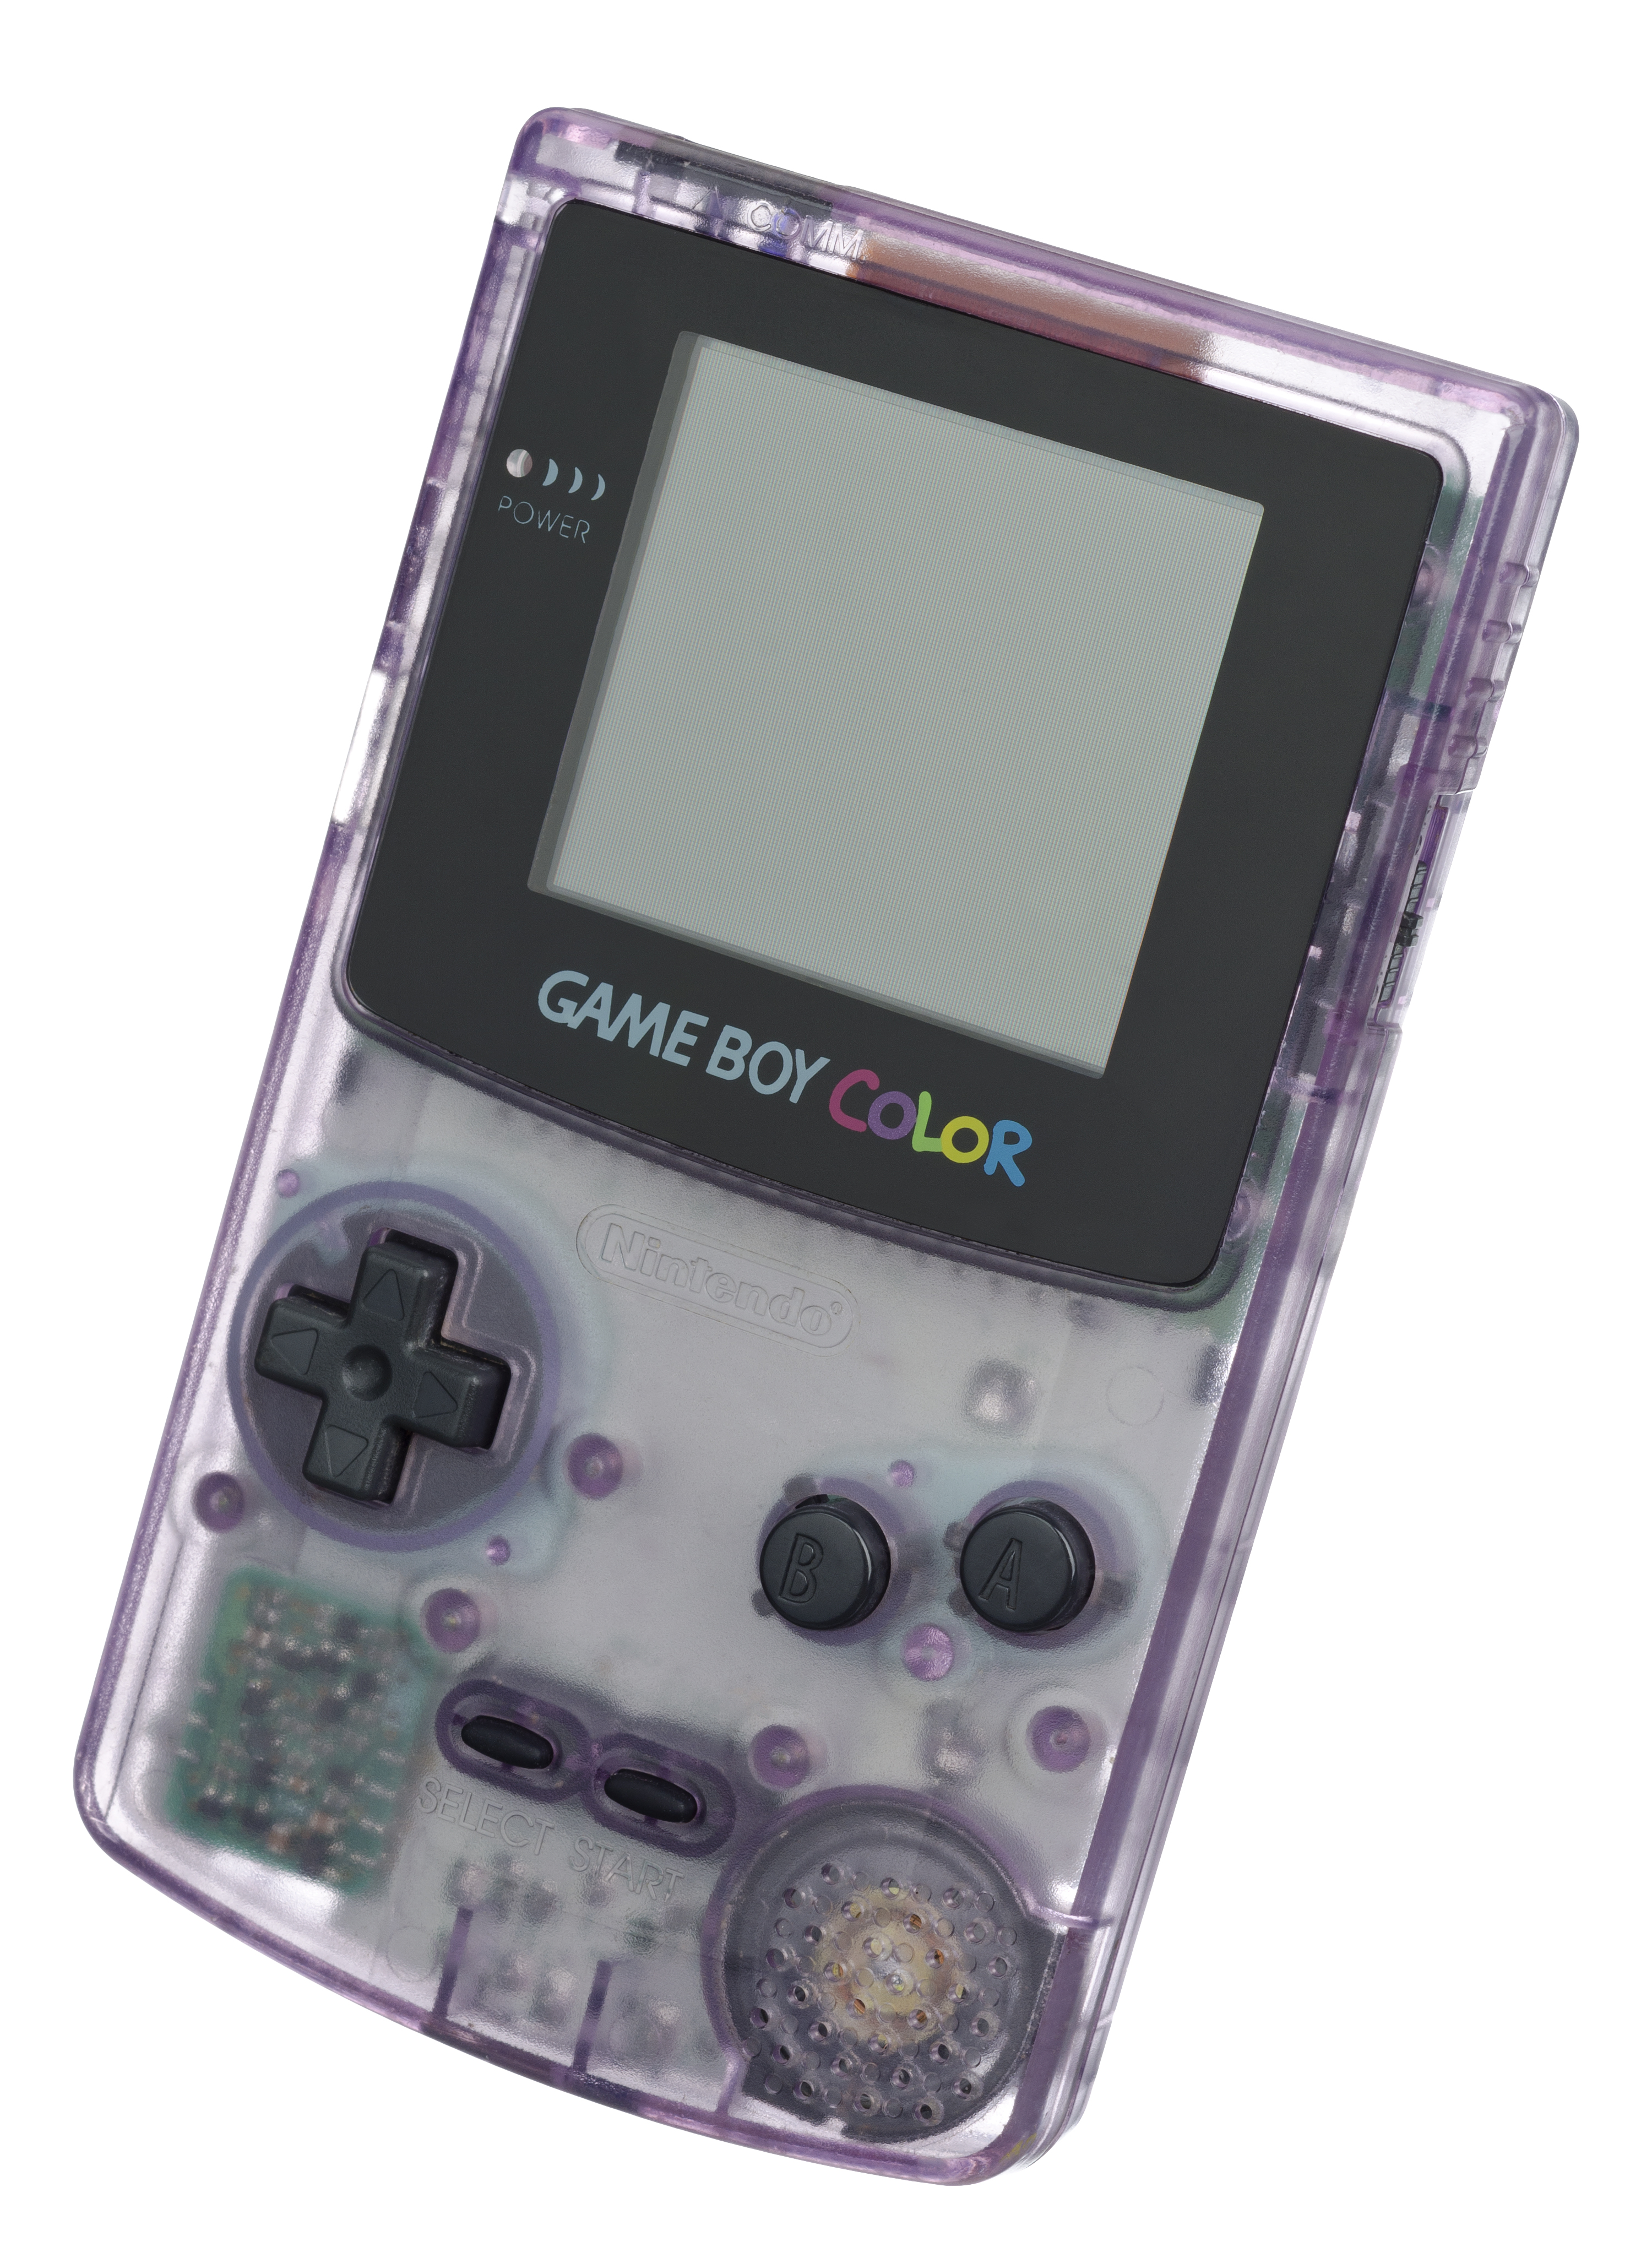 clipart black and white download Game boy color wikipedia. Transparent gameboy.